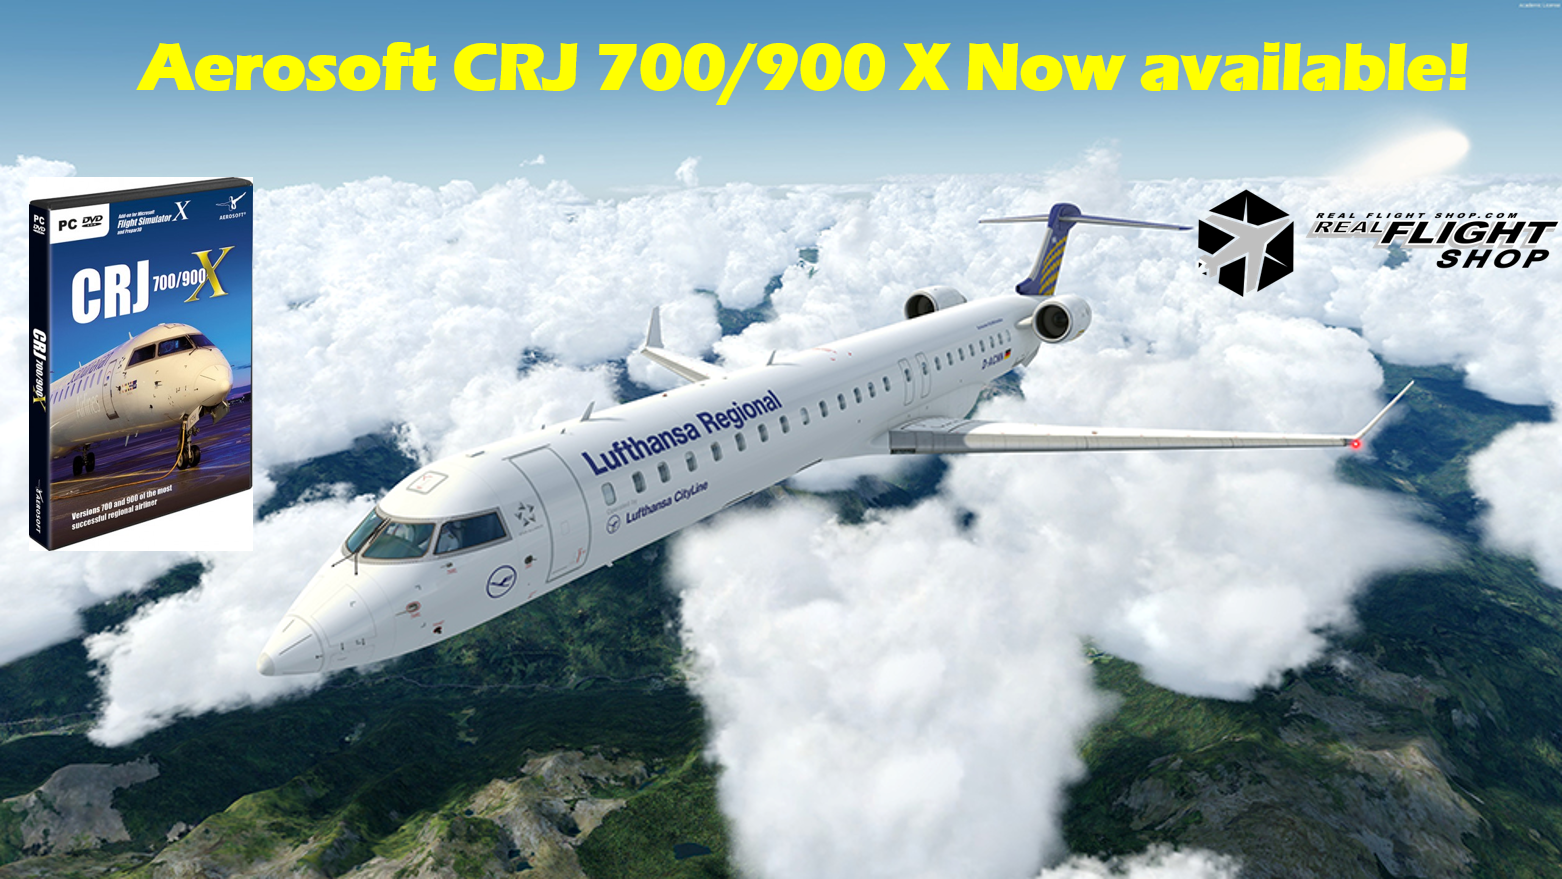 Aerosoft CRJ are finally here!